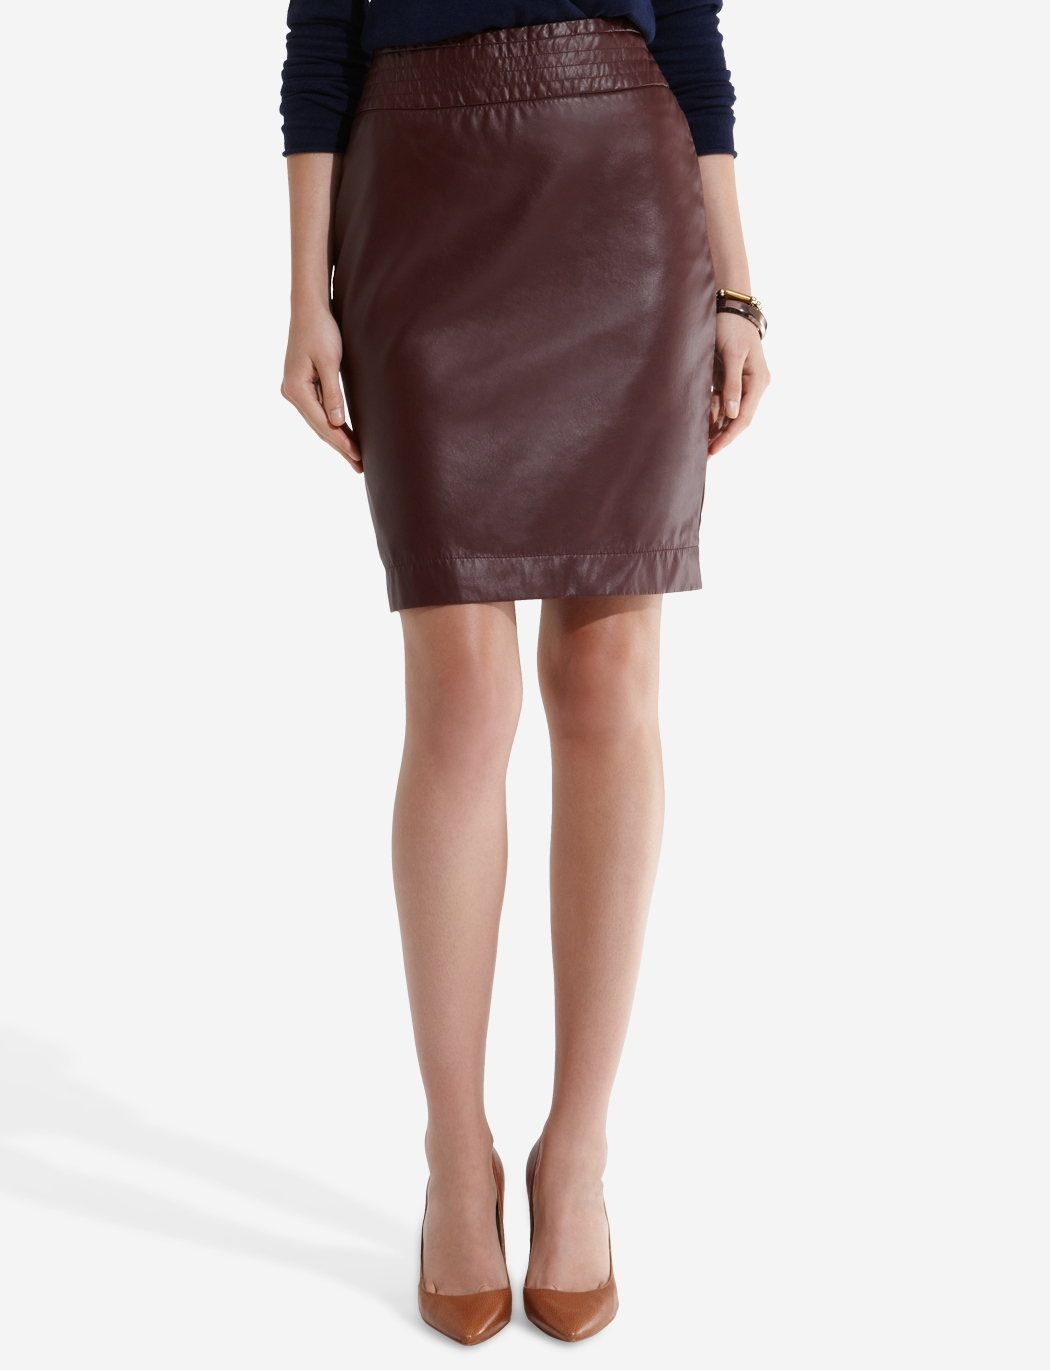 Shop Faux-Leather Pencil Skirt. Find your perfect size online at the best price at New York & Company.